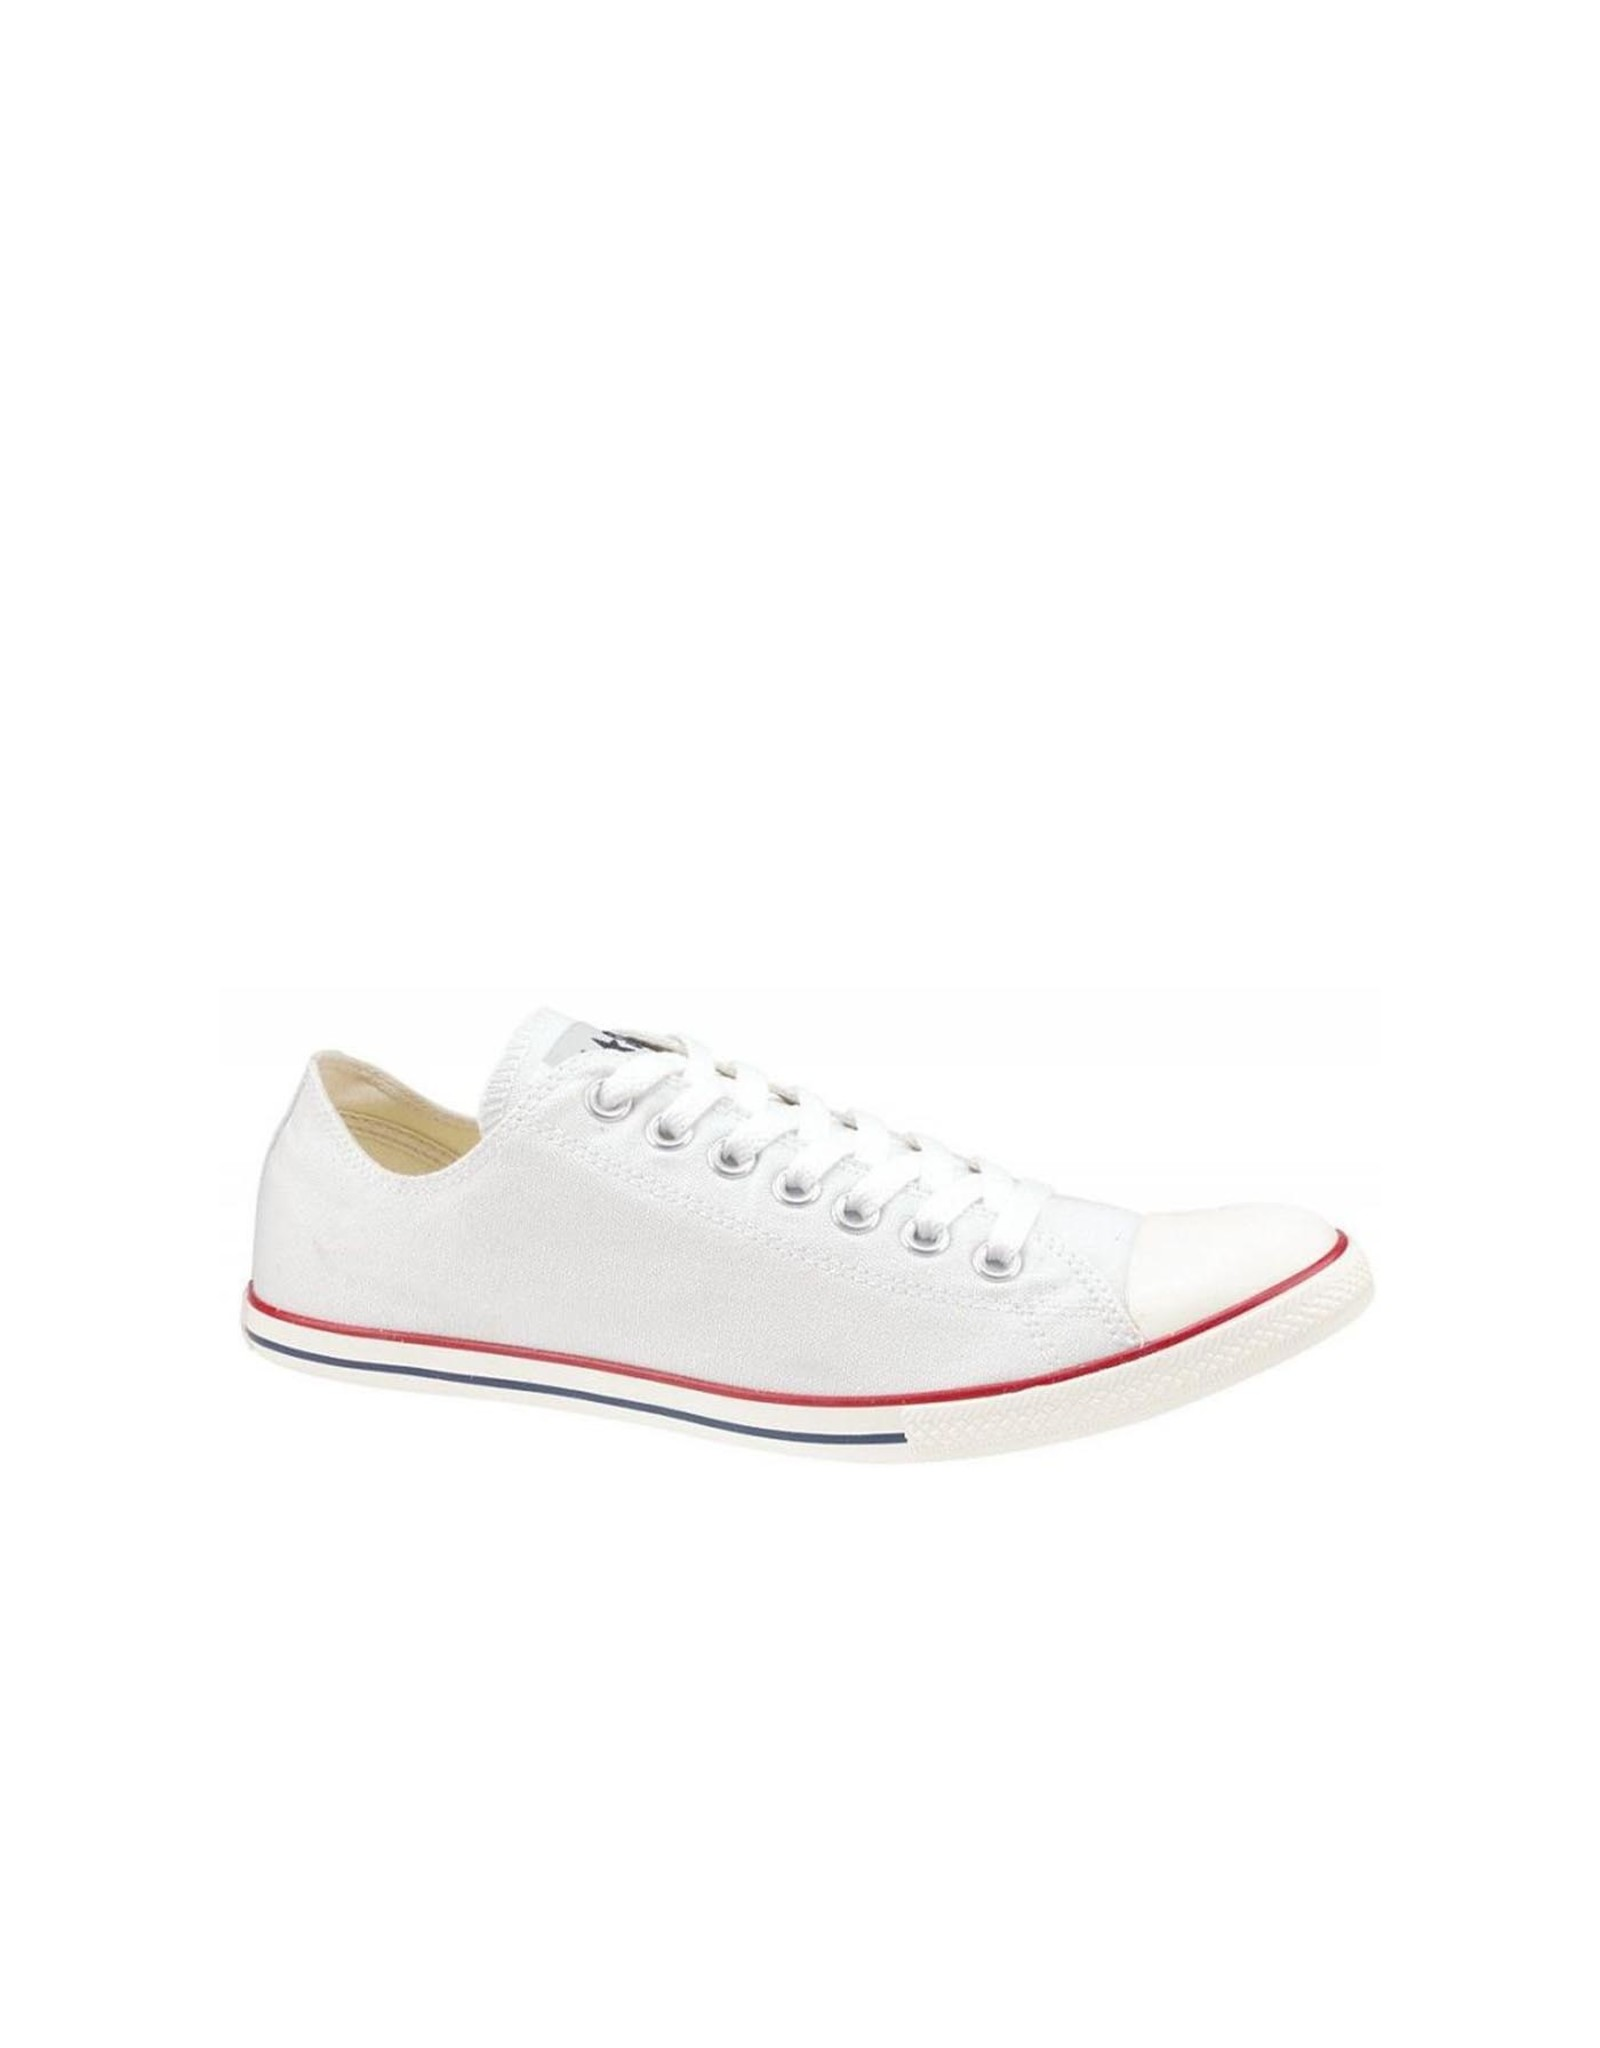 CONVERSE CHUCK TAYLOR SLIM OX WHITE C40OP -113902